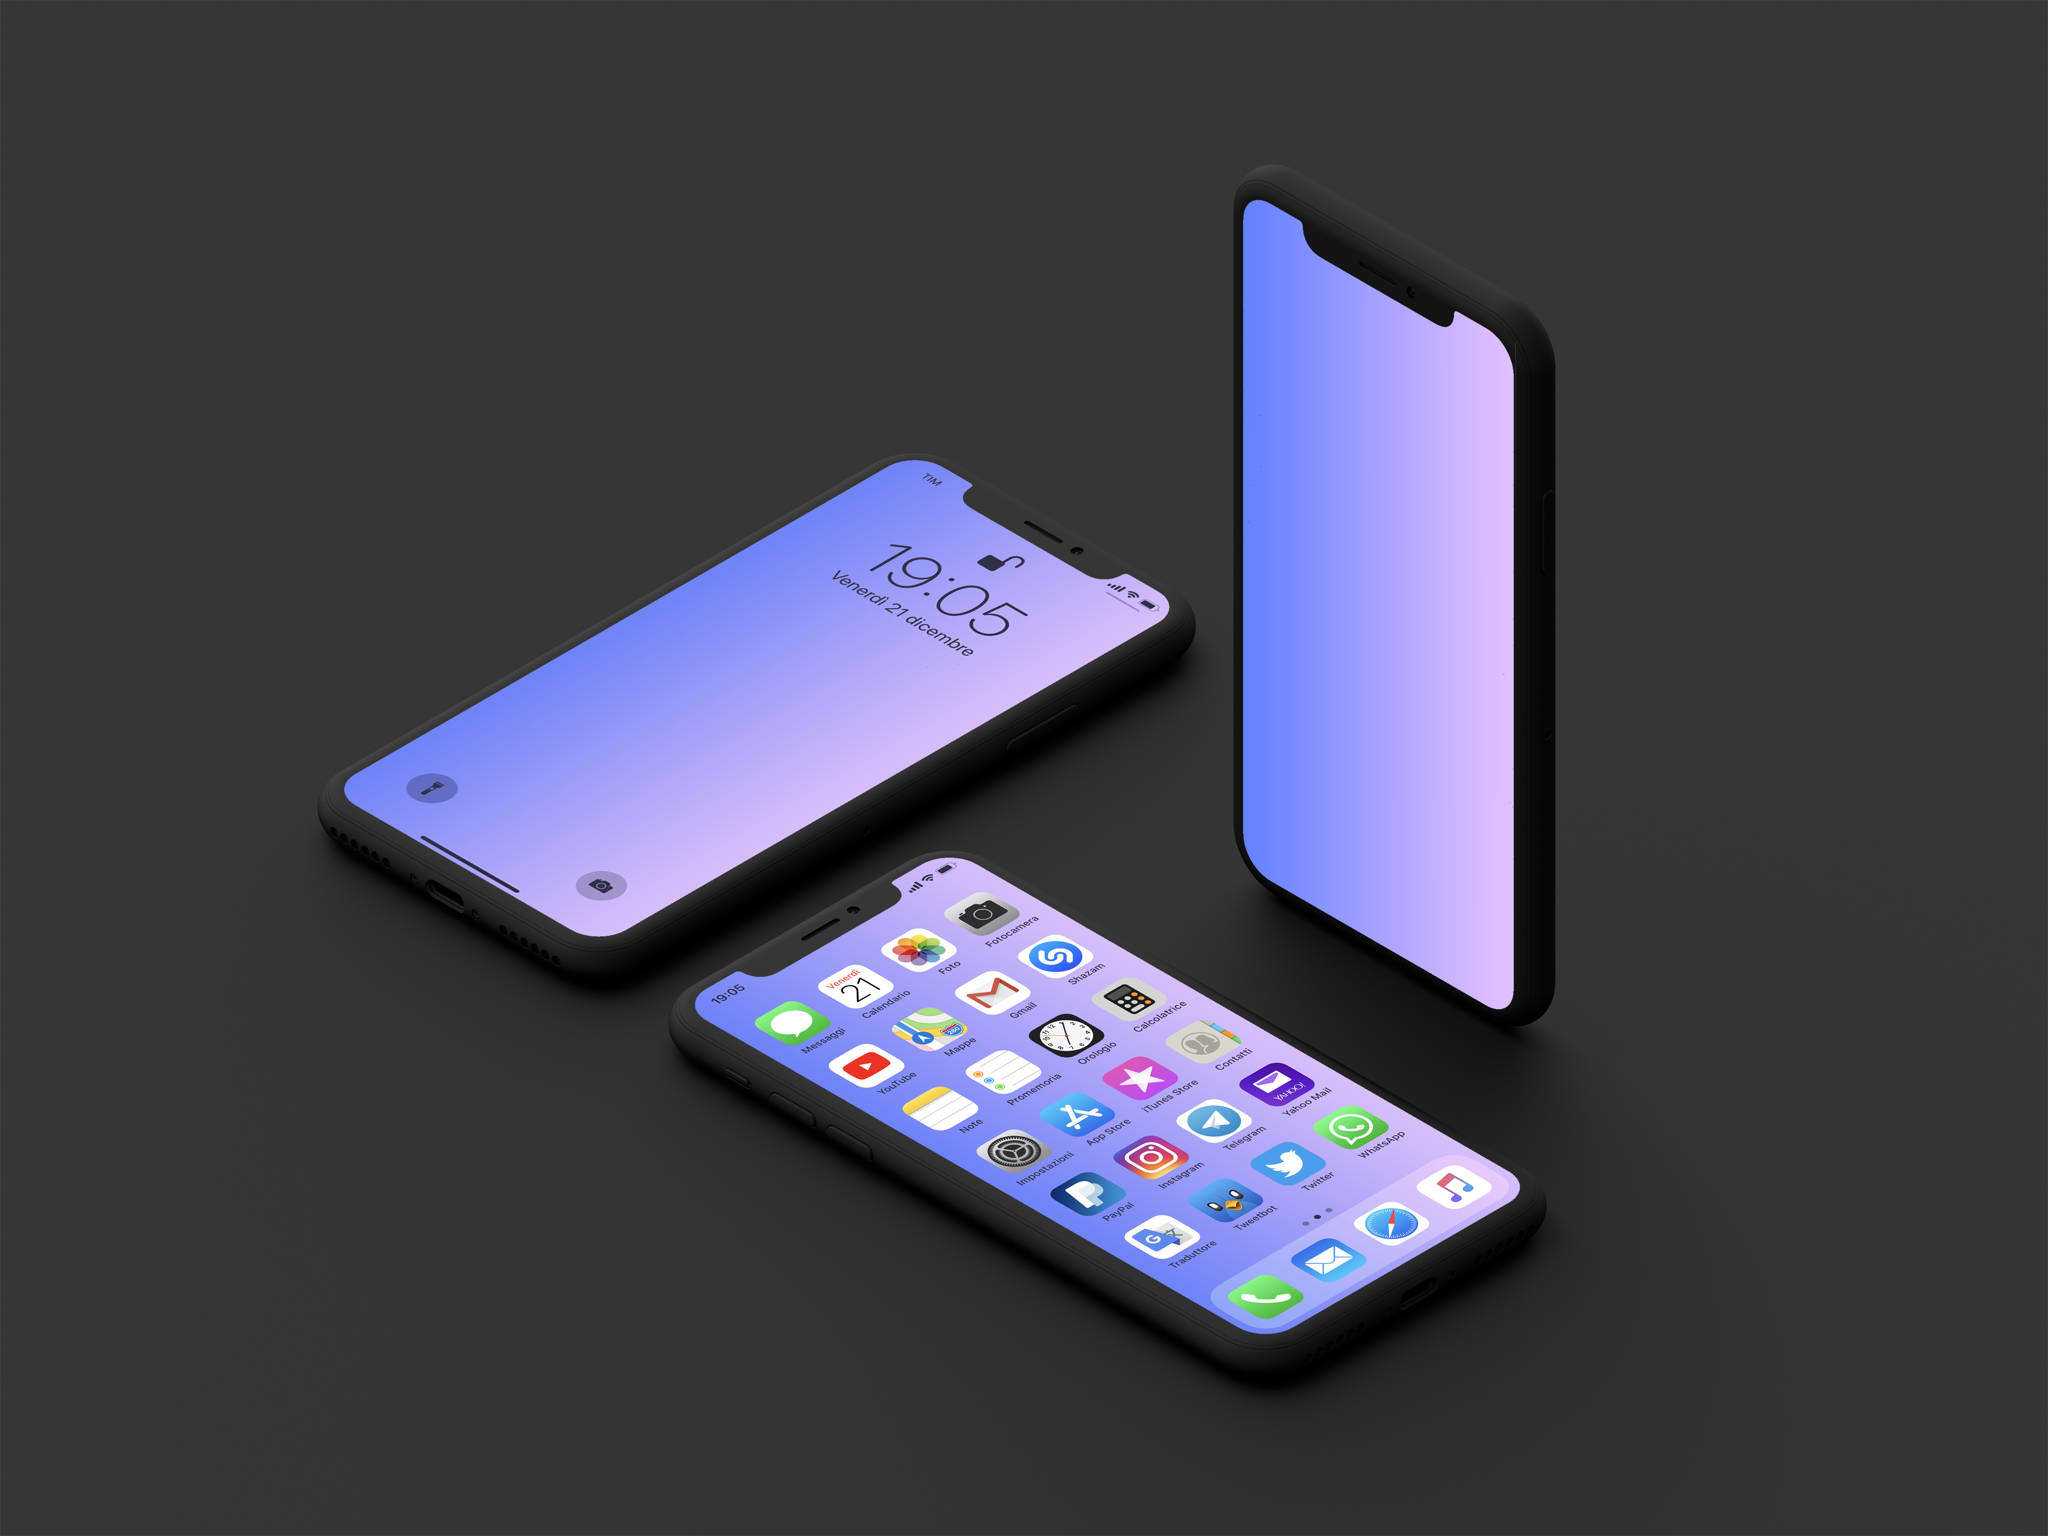 iphone wallpaper gradient AR72014 mock up